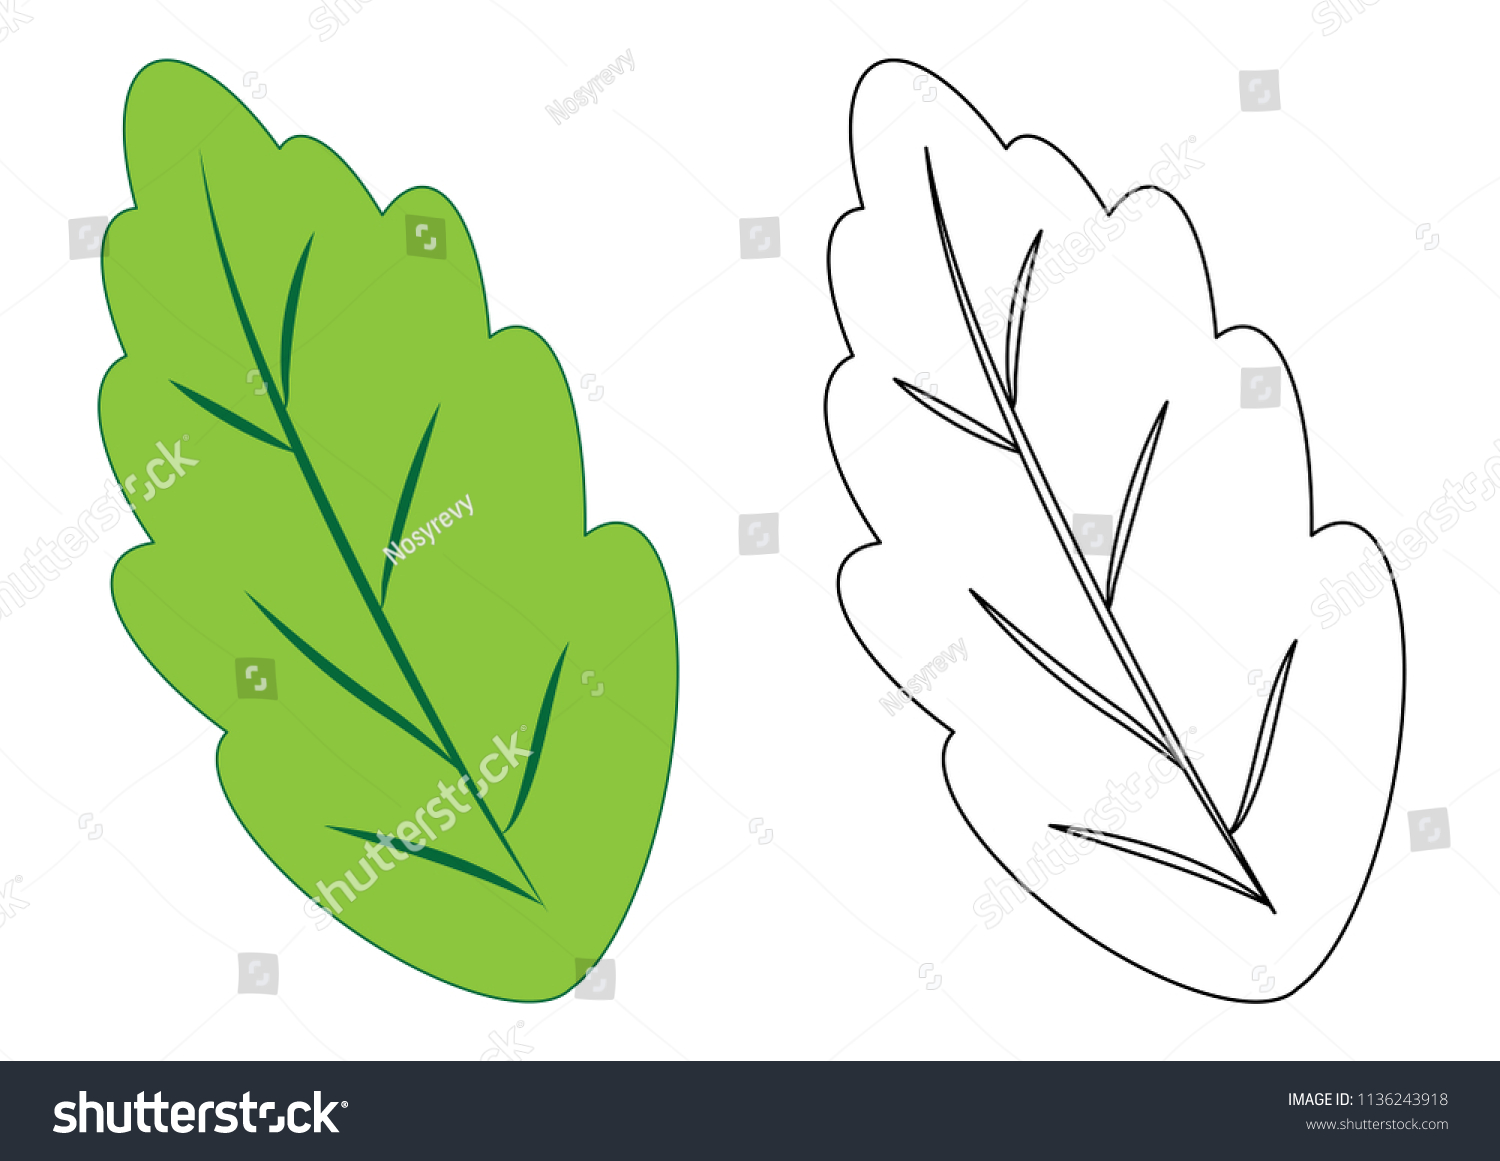 Leaf Coloring Page Game Kids Vector Stock Vector 1136243918 ...